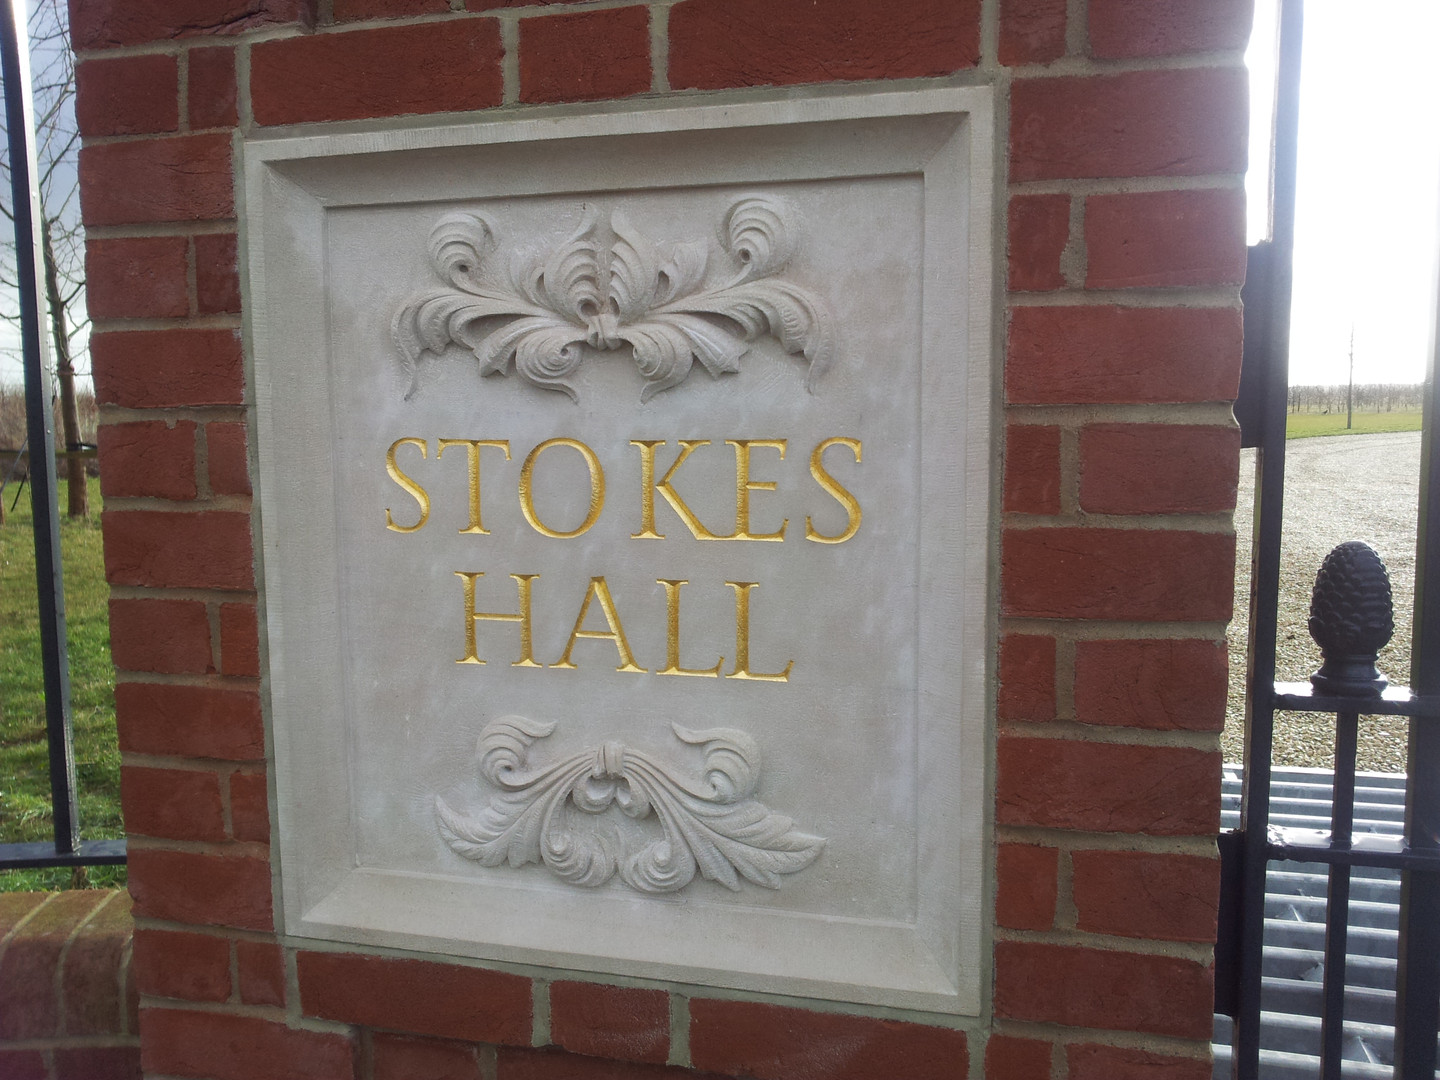 Stokes Hall gate sign